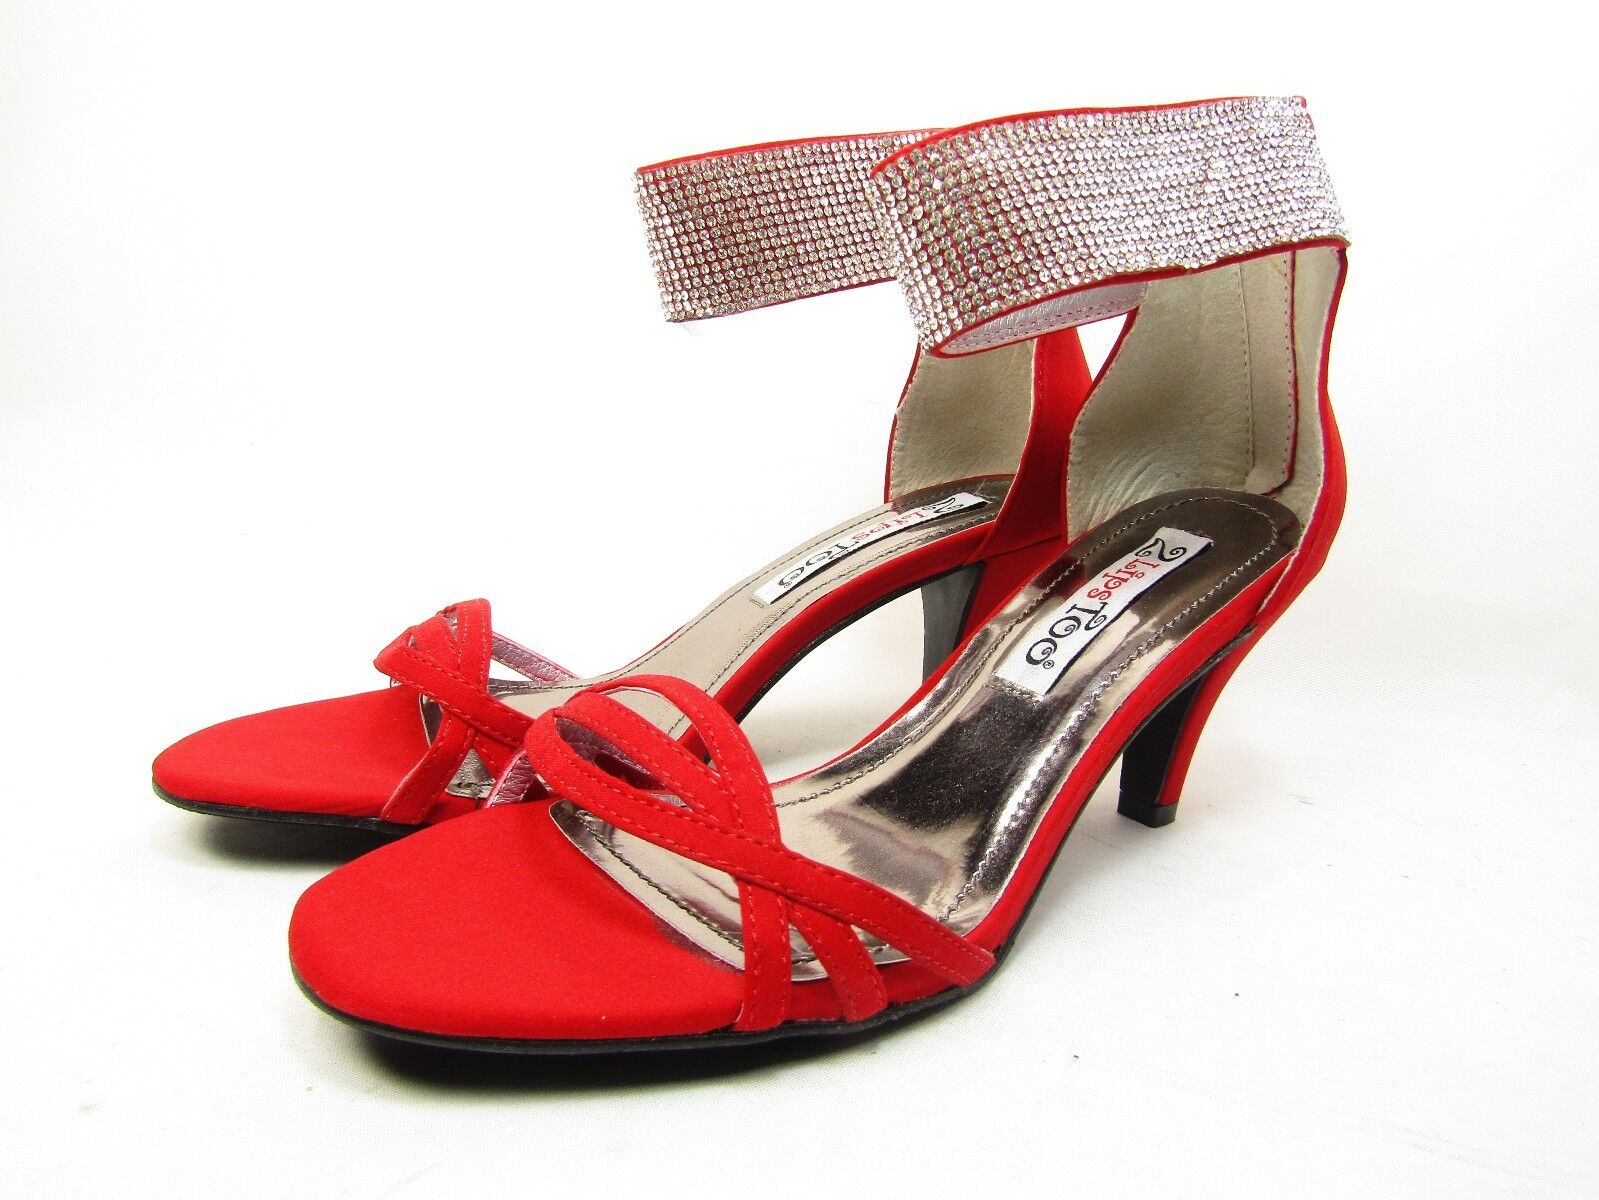 2 Lips Too Too Enlight Womens Sandals Red Size 8M